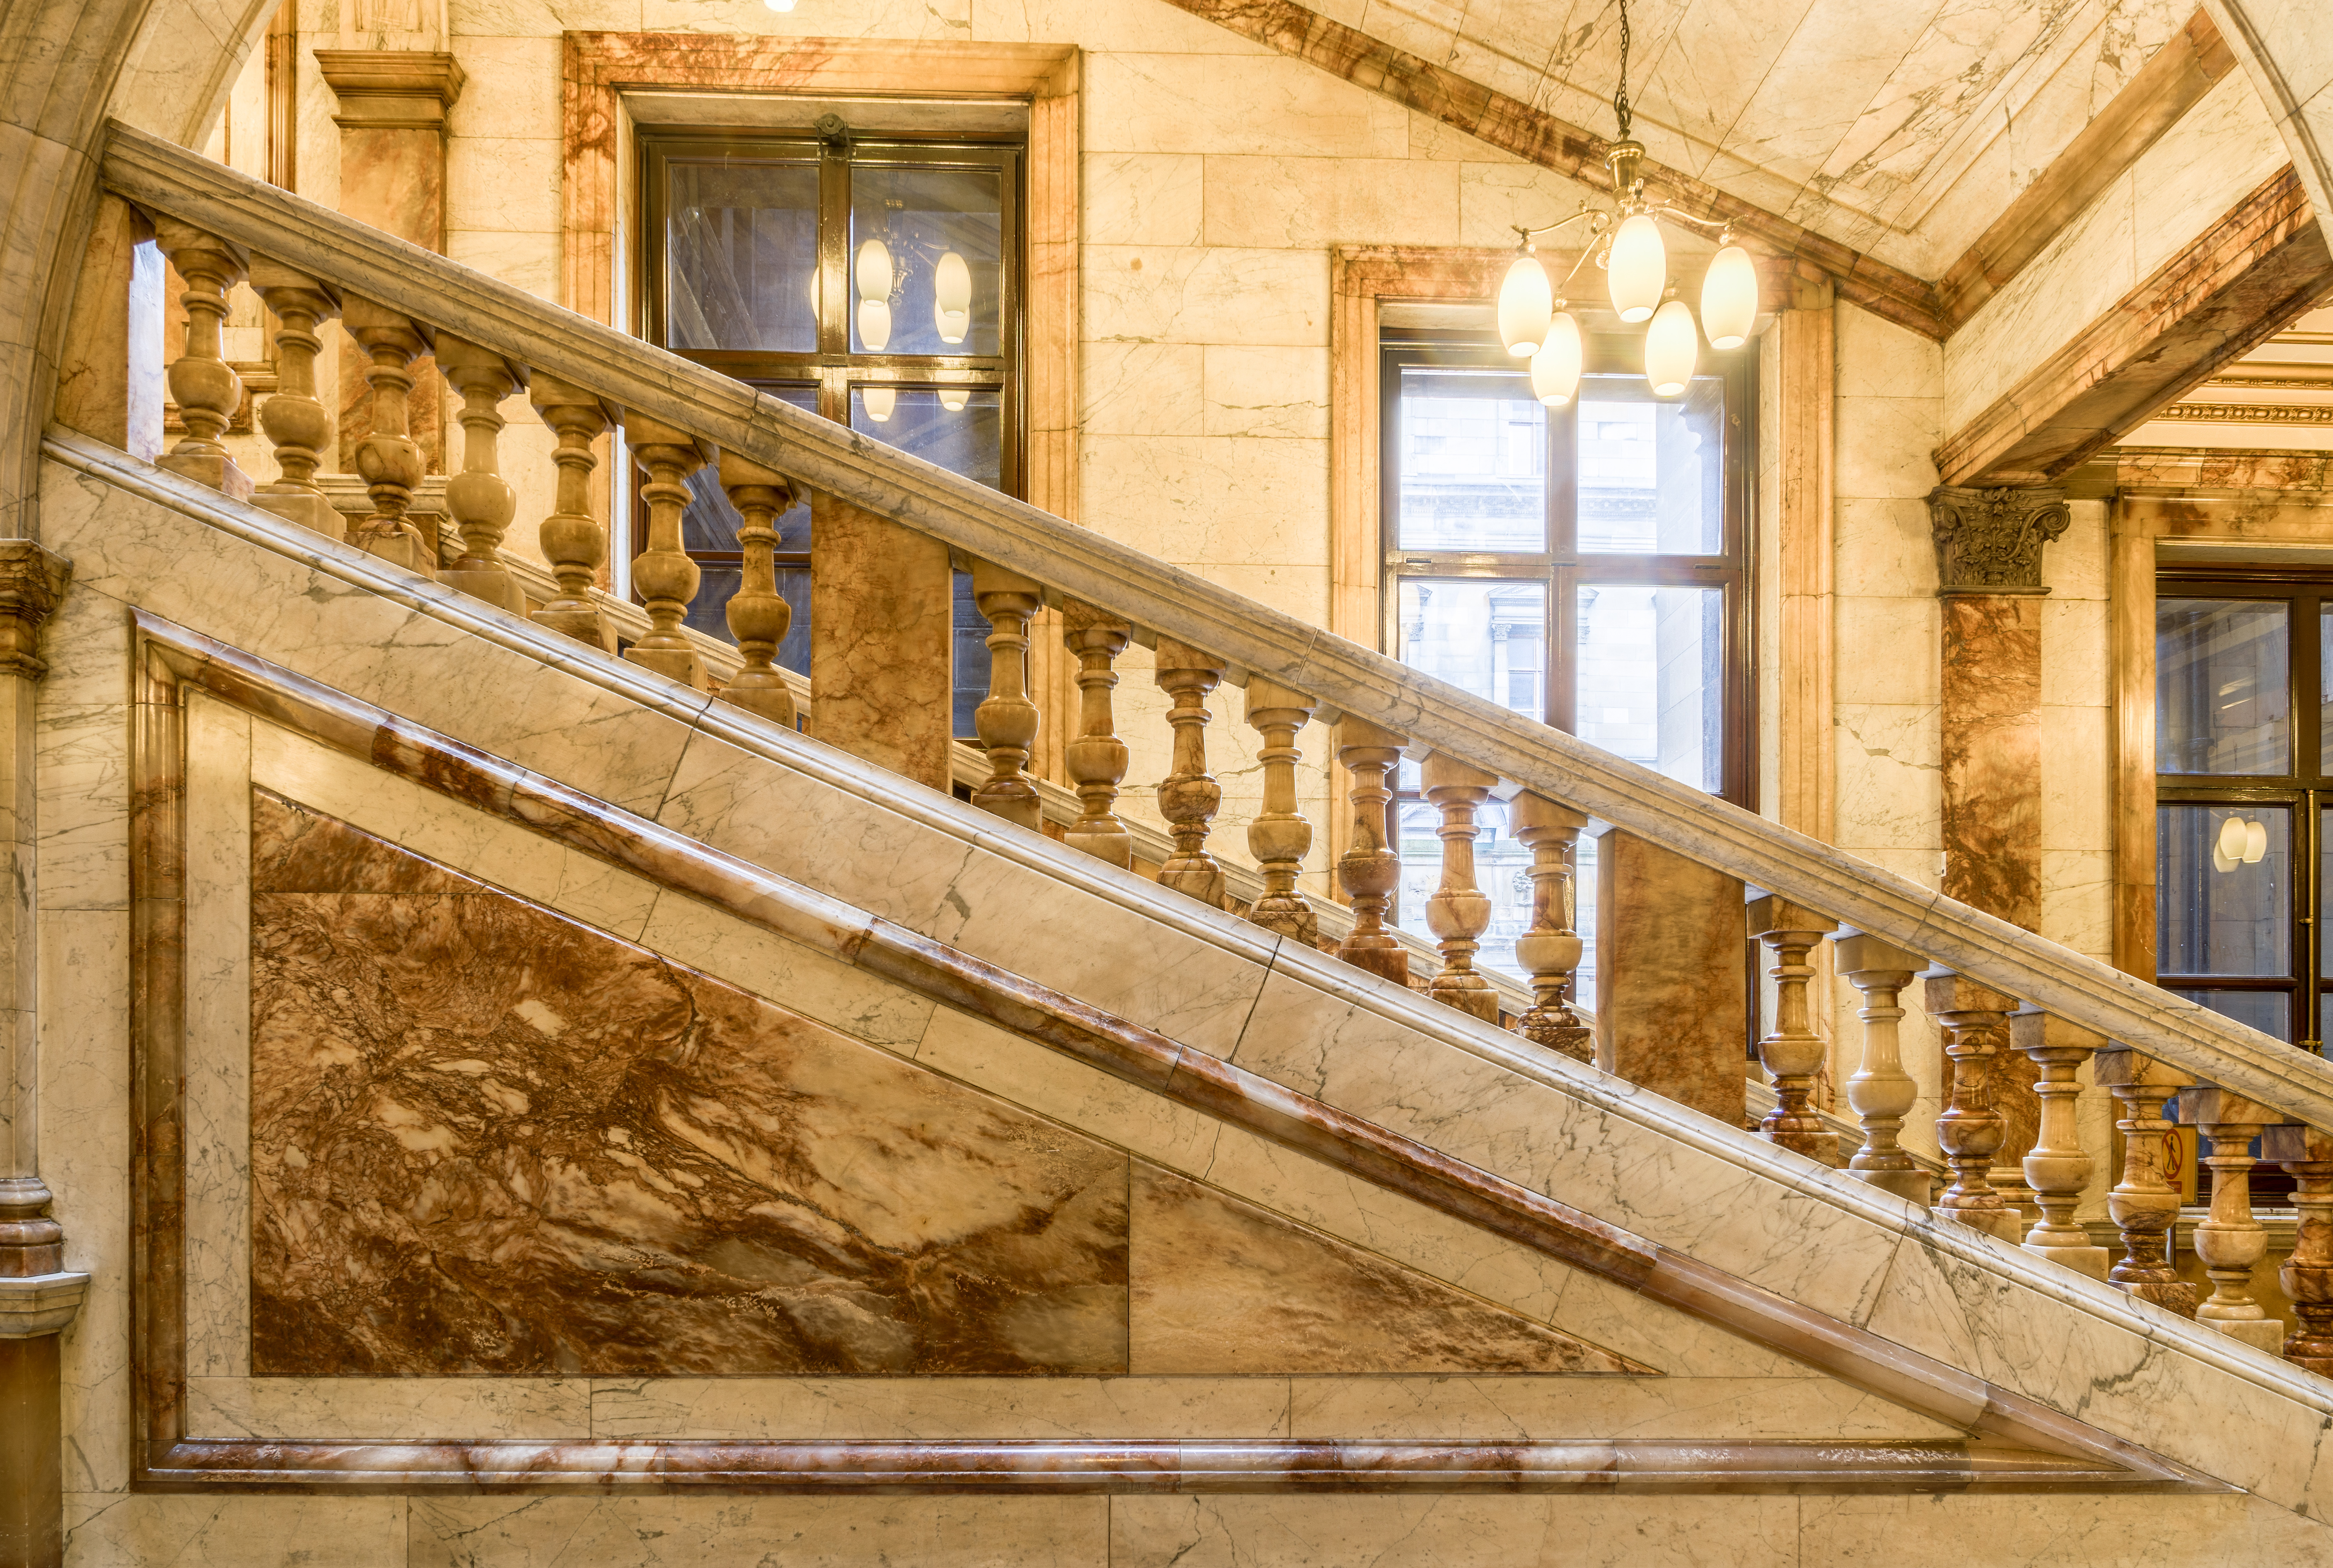 File:Glasgow City Chambers   Carrara Marble Staircase   1